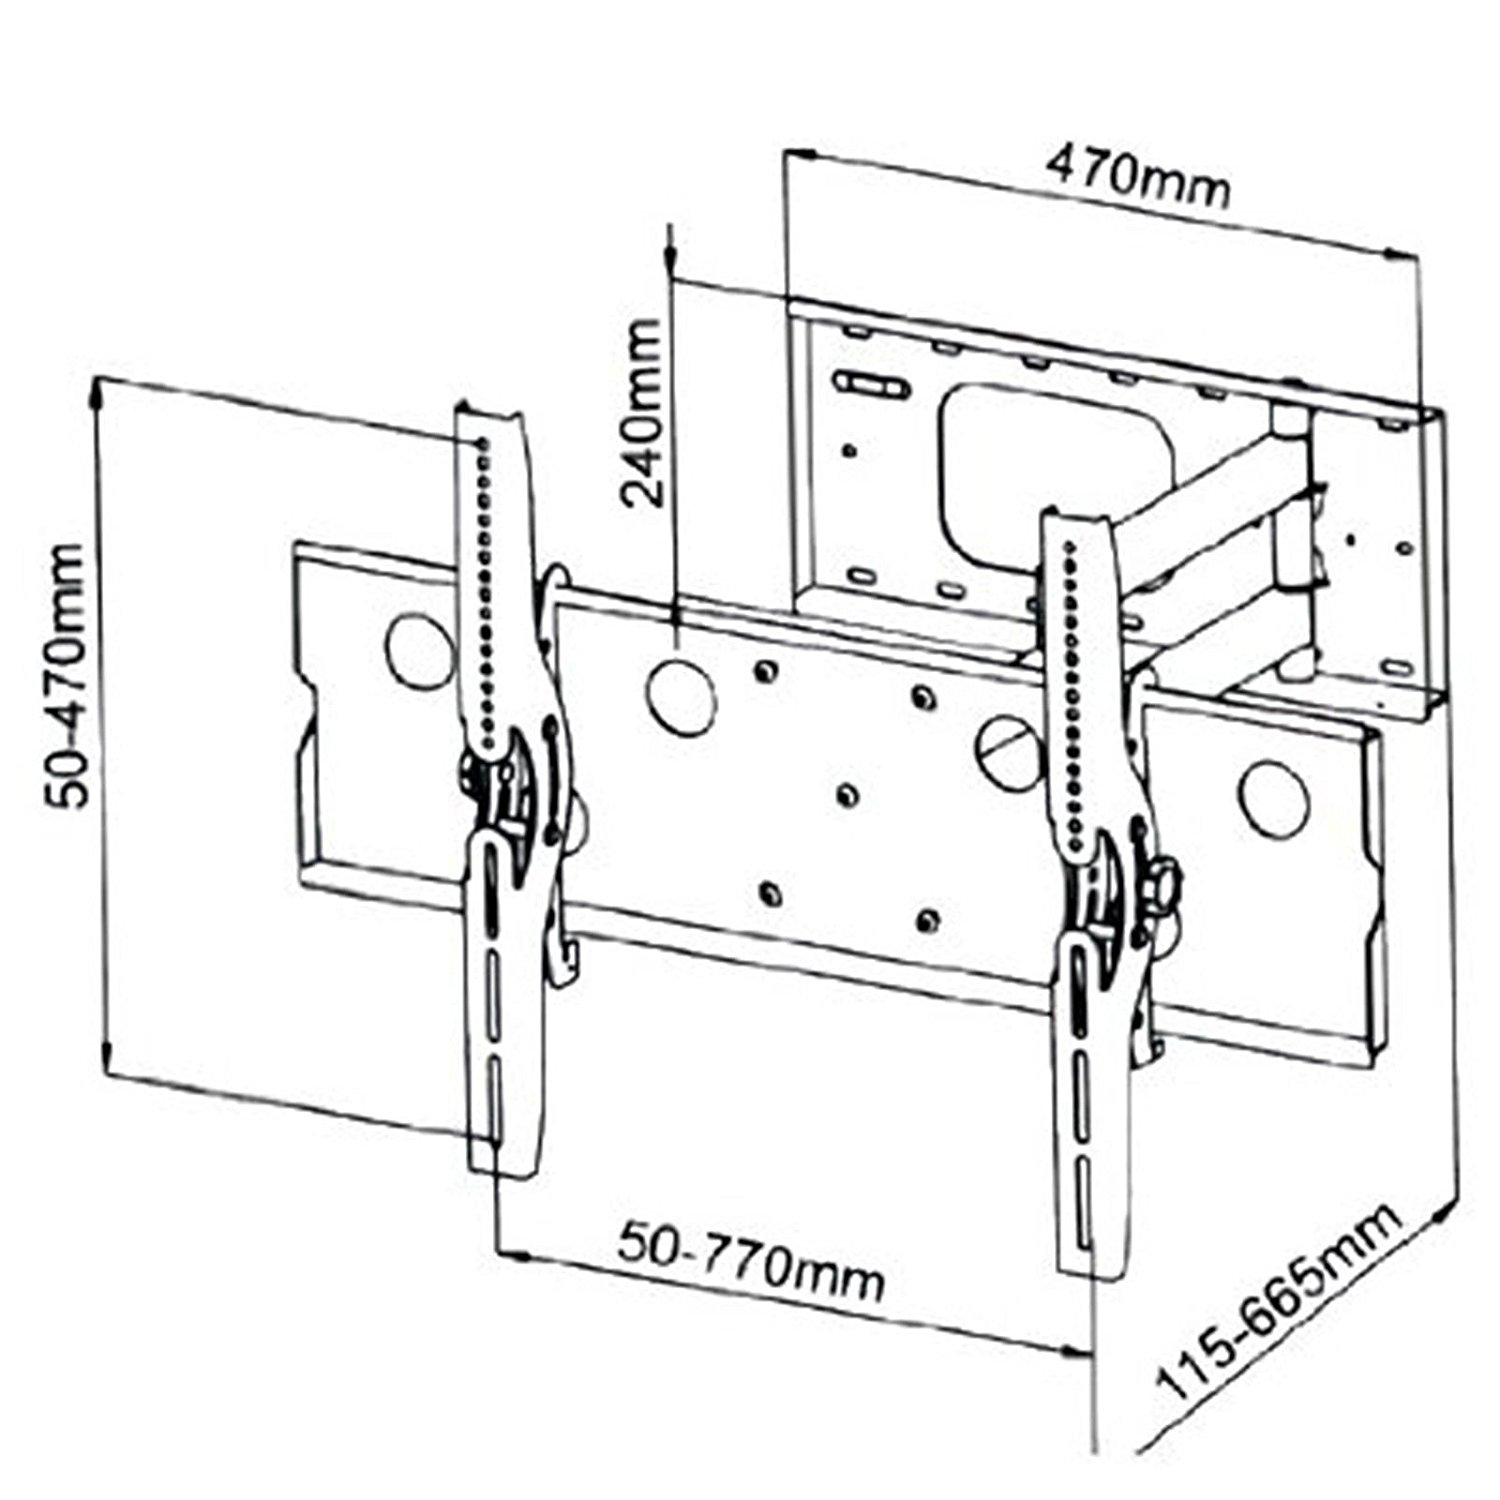 Flat Screen Tv Drawing At Free For Personal Use Draw Circuit Diagram 1500x1500 2xhome New Wall Mount Bracket Single Arm